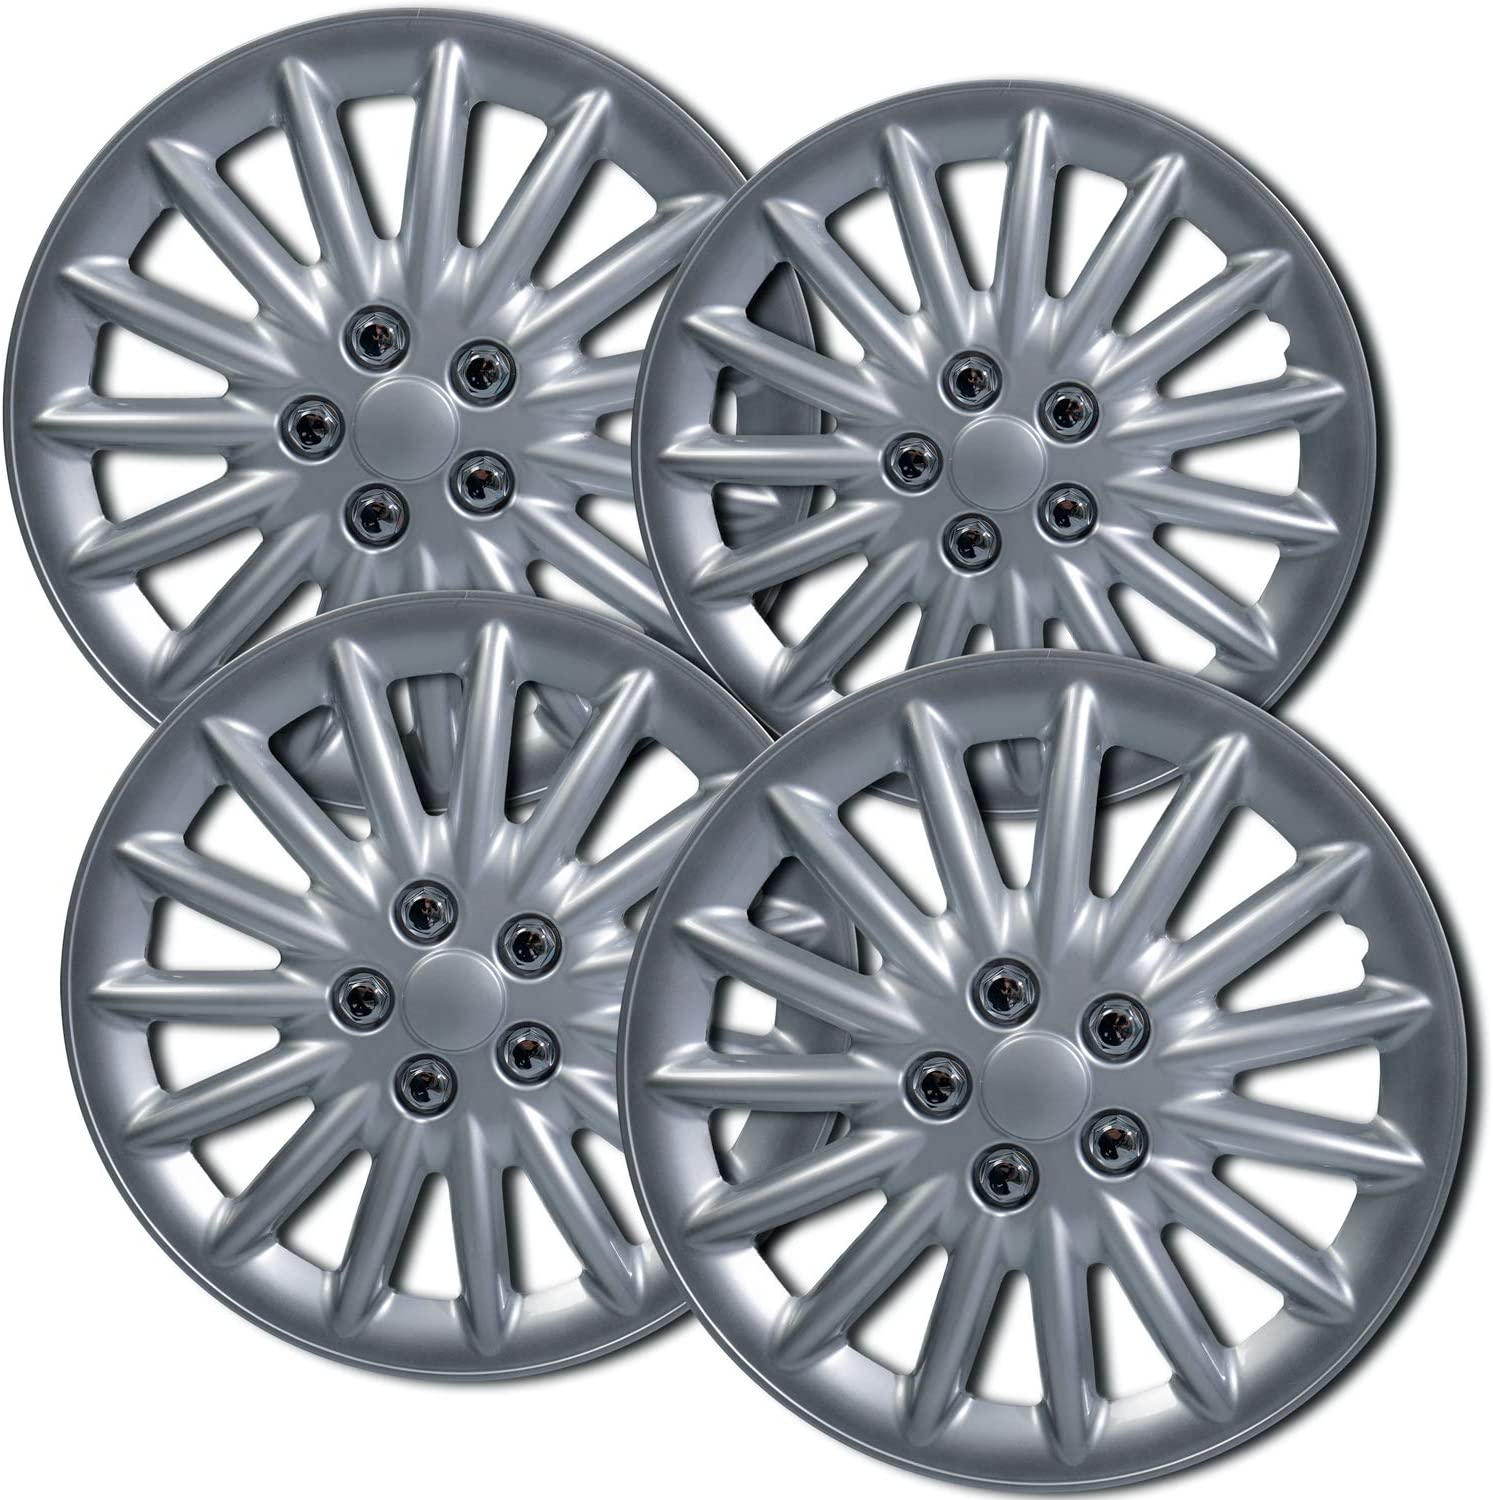 Amazon Com 16 Inch Hubcaps Best For 2013 2018 Nissan Leaf Set Of 4 Wheel Covers 16in Hub Caps Silver Rim Cover Car Accessories For 16 Inch Wheels Snap On Hubcap